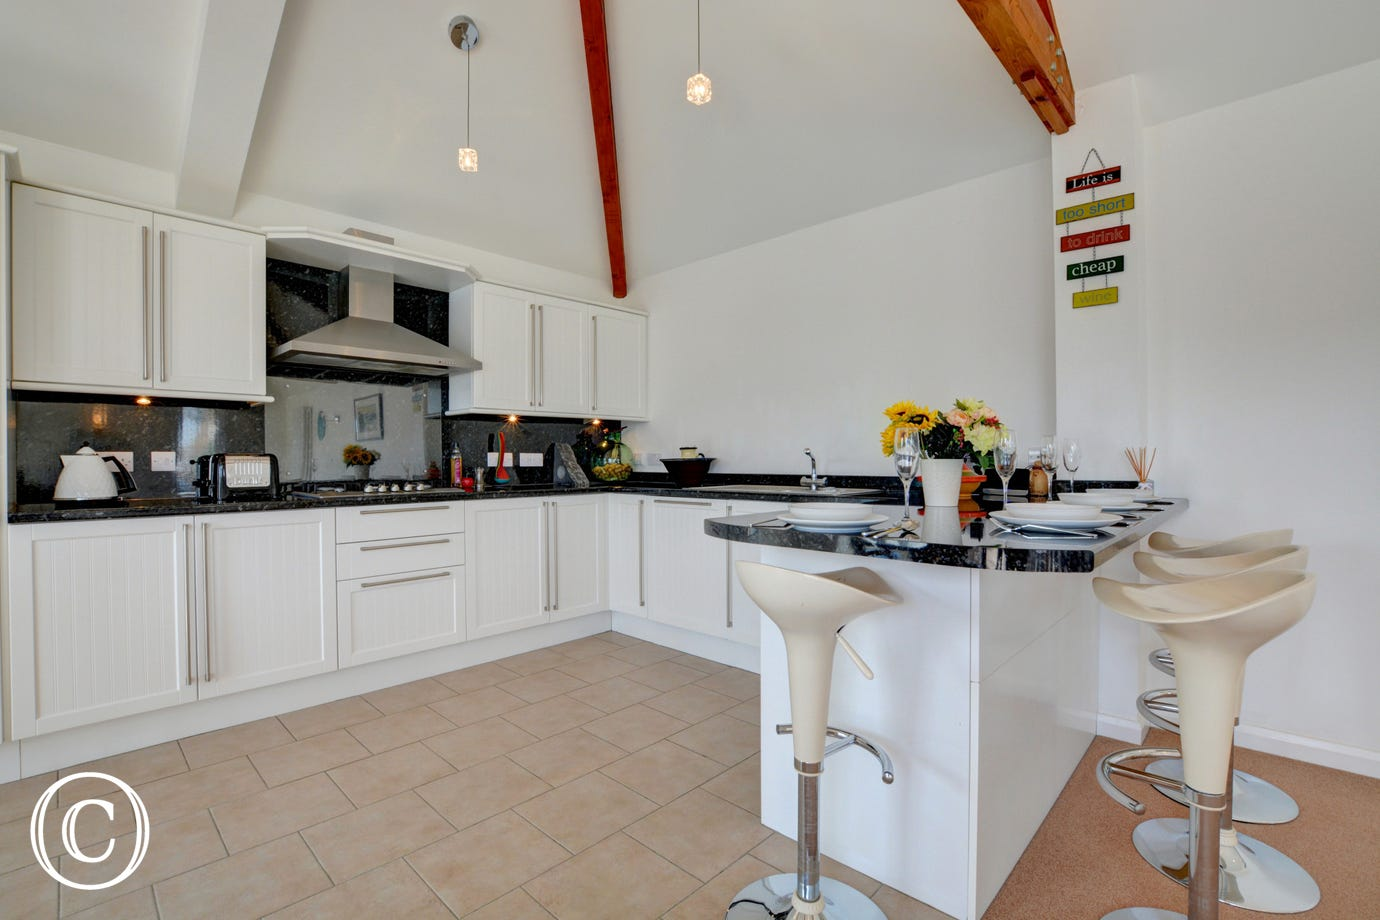 A modern kitchen area with character beams making this an ideal self catering property.